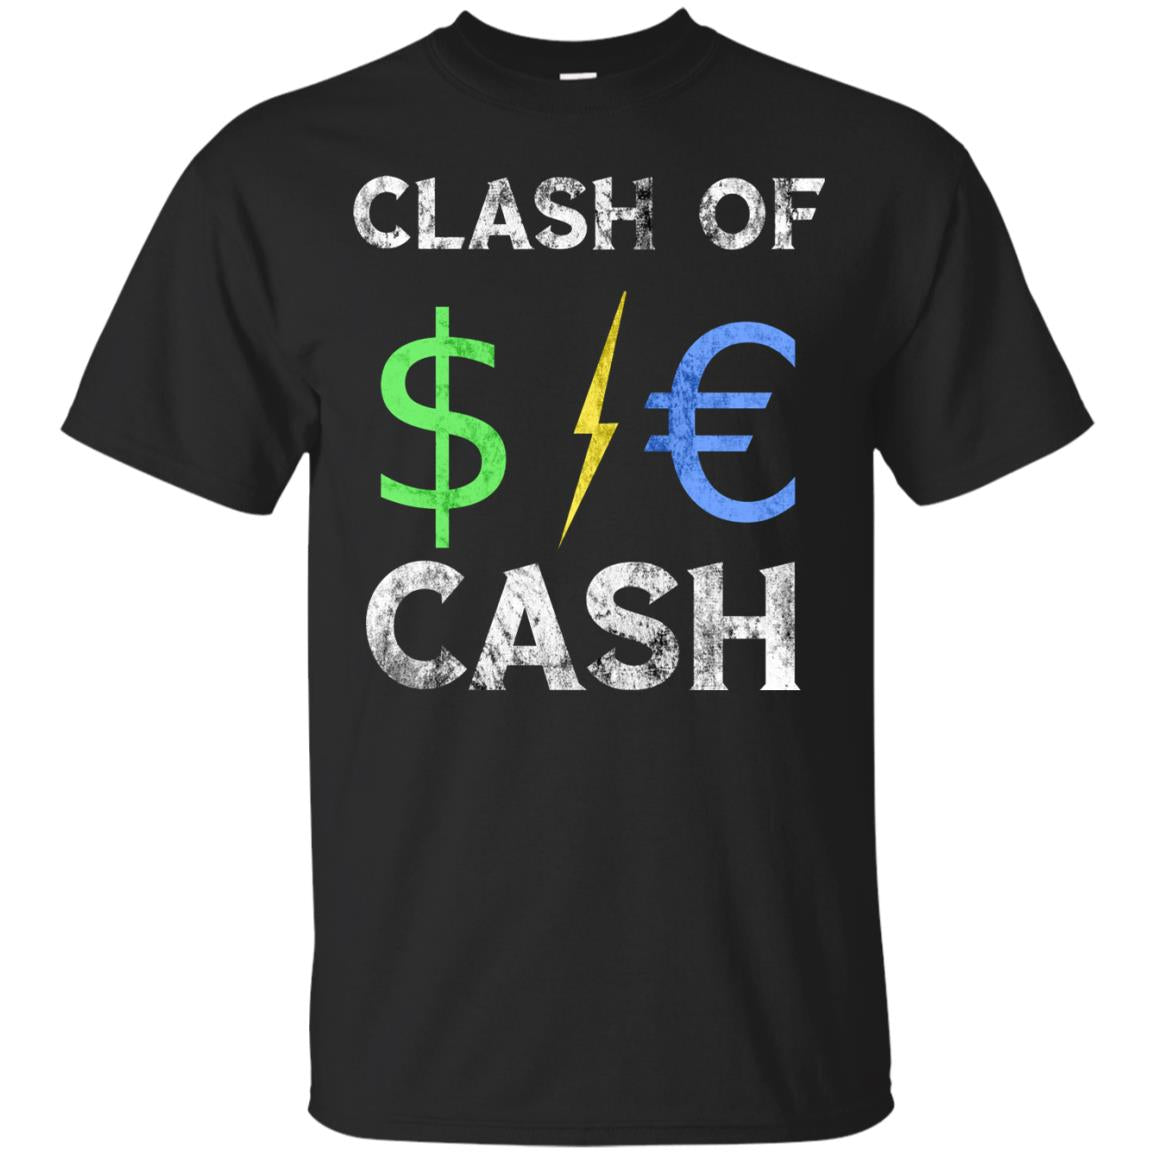 Clash of Cash Dollar Lightning Euro   Men Women TShirt